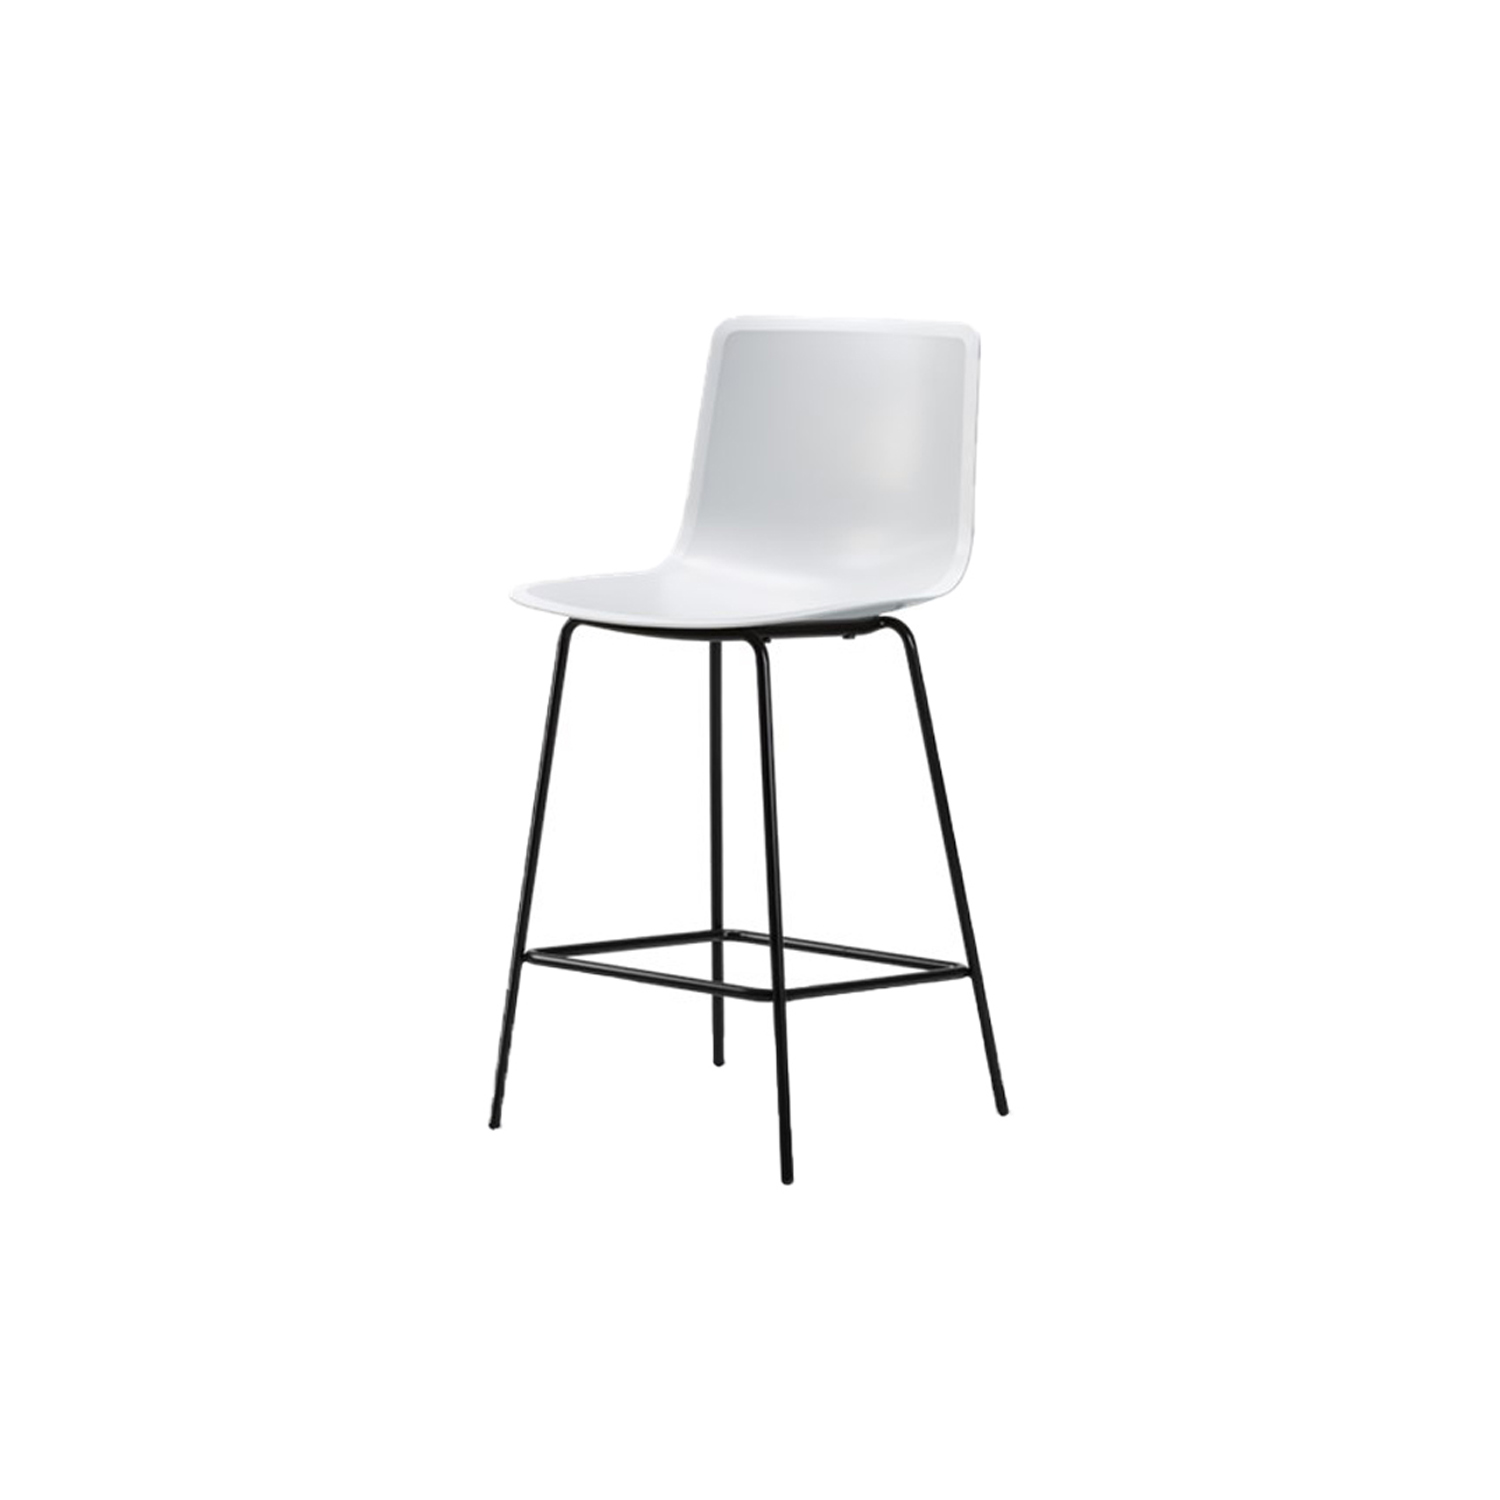 Pato 4 Leg Barstool - Pato is a carefully crafted multipurpose chair in eco-friendly polypropylene that can be used outdoors. The chair is available with a range of optional features including coupling. The chair can be tuned from basic to exclusive with optional upholstery.  Pato is a prime example of our focus on sustainability and protecting the environment, reflected in a chair that's 100% renewable and recyclable. All components can be incorporated into future furniture production, thus contributing to a circular economy by minimising the use of materials, resources, waste and pollution.   Merging traditional production methods with cutting-edge technology, Pato is a human-centric, highly versatile series of multi-purpose functional furniture that draws on our in-depth experience with materials, immaculate detailing and heritage of fine craftsmanship. Allowing us to apply our high standards of texture, finish and carpentry techniques to an array of materials in addition to wood for products aimed at a mass market.   With its clean lines and curves, Pato echoes the ethos of Danish-Icelandic design duo Welling/Ludvik. Demonstrating their belief that good design has the ability to be interesting, even when reduced to its most simple form. Where anything extraneous is eliminated and every detail has a purpose.   Together we spent nearly three years developing the shell structure to have a soft surface that's also wear and tear resistant. Enhancing the chair's ability to optimally conform to the user's body is a subtle beveled edge. A technique from classic cabinetmaking, which gives the chair a sense of handcrafted finesse. Each Pato is detailed and finished by hand by our highly skilled crafts people, who refine the beveled edge and the silky, resilient surface. Setting a new standard for the execution and finish of polypropylene.   Since the success of its initial launch, we've expanded Pato into an extensive collection of variants, featuring armchairs, barstools